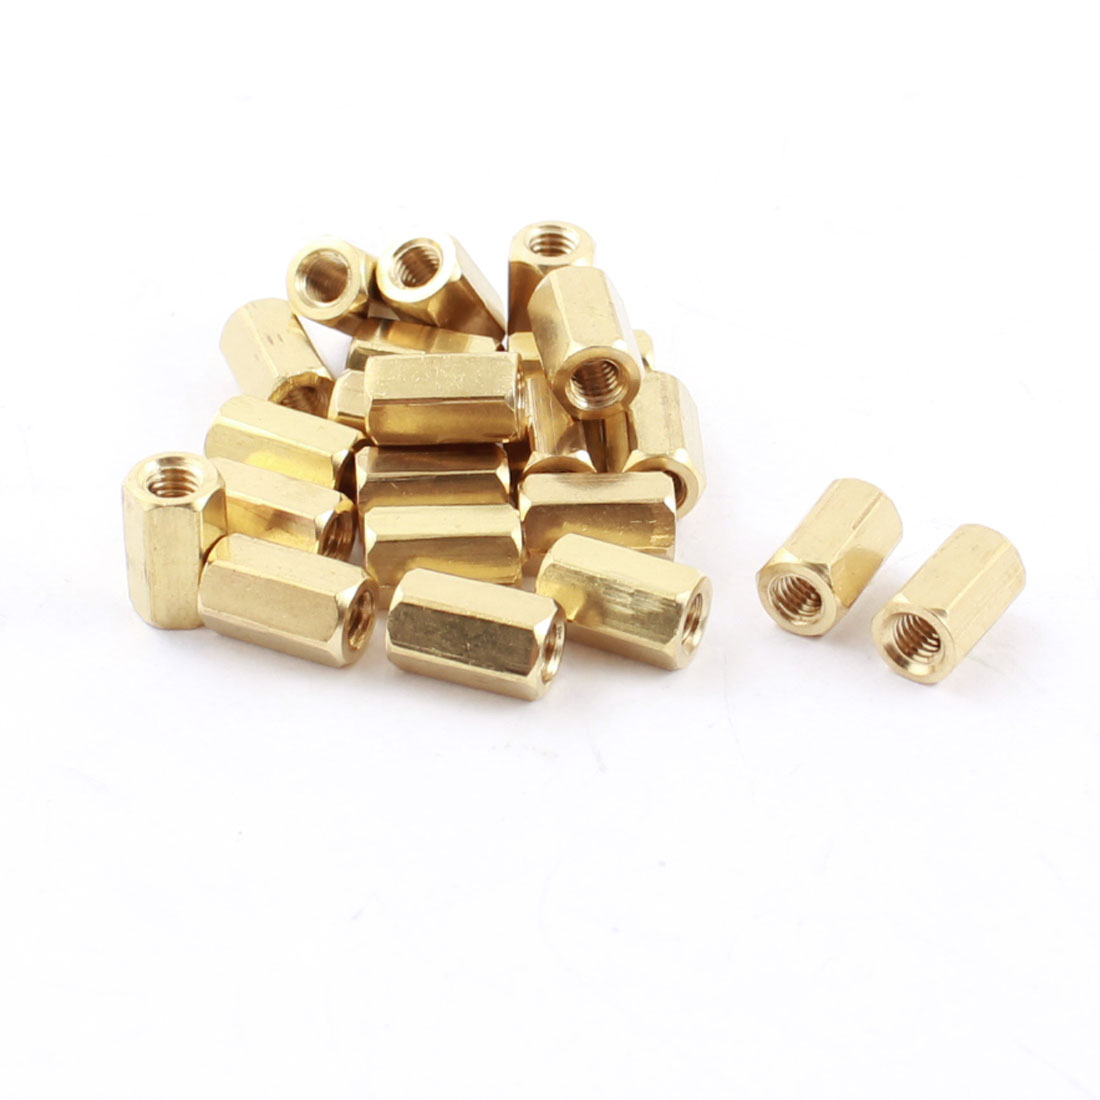 20 Pcs M3 Female Thread 8mm Long Double Ends Brass Pillar PCB Standoff Hexagonal Nut Spacer Gold Tone